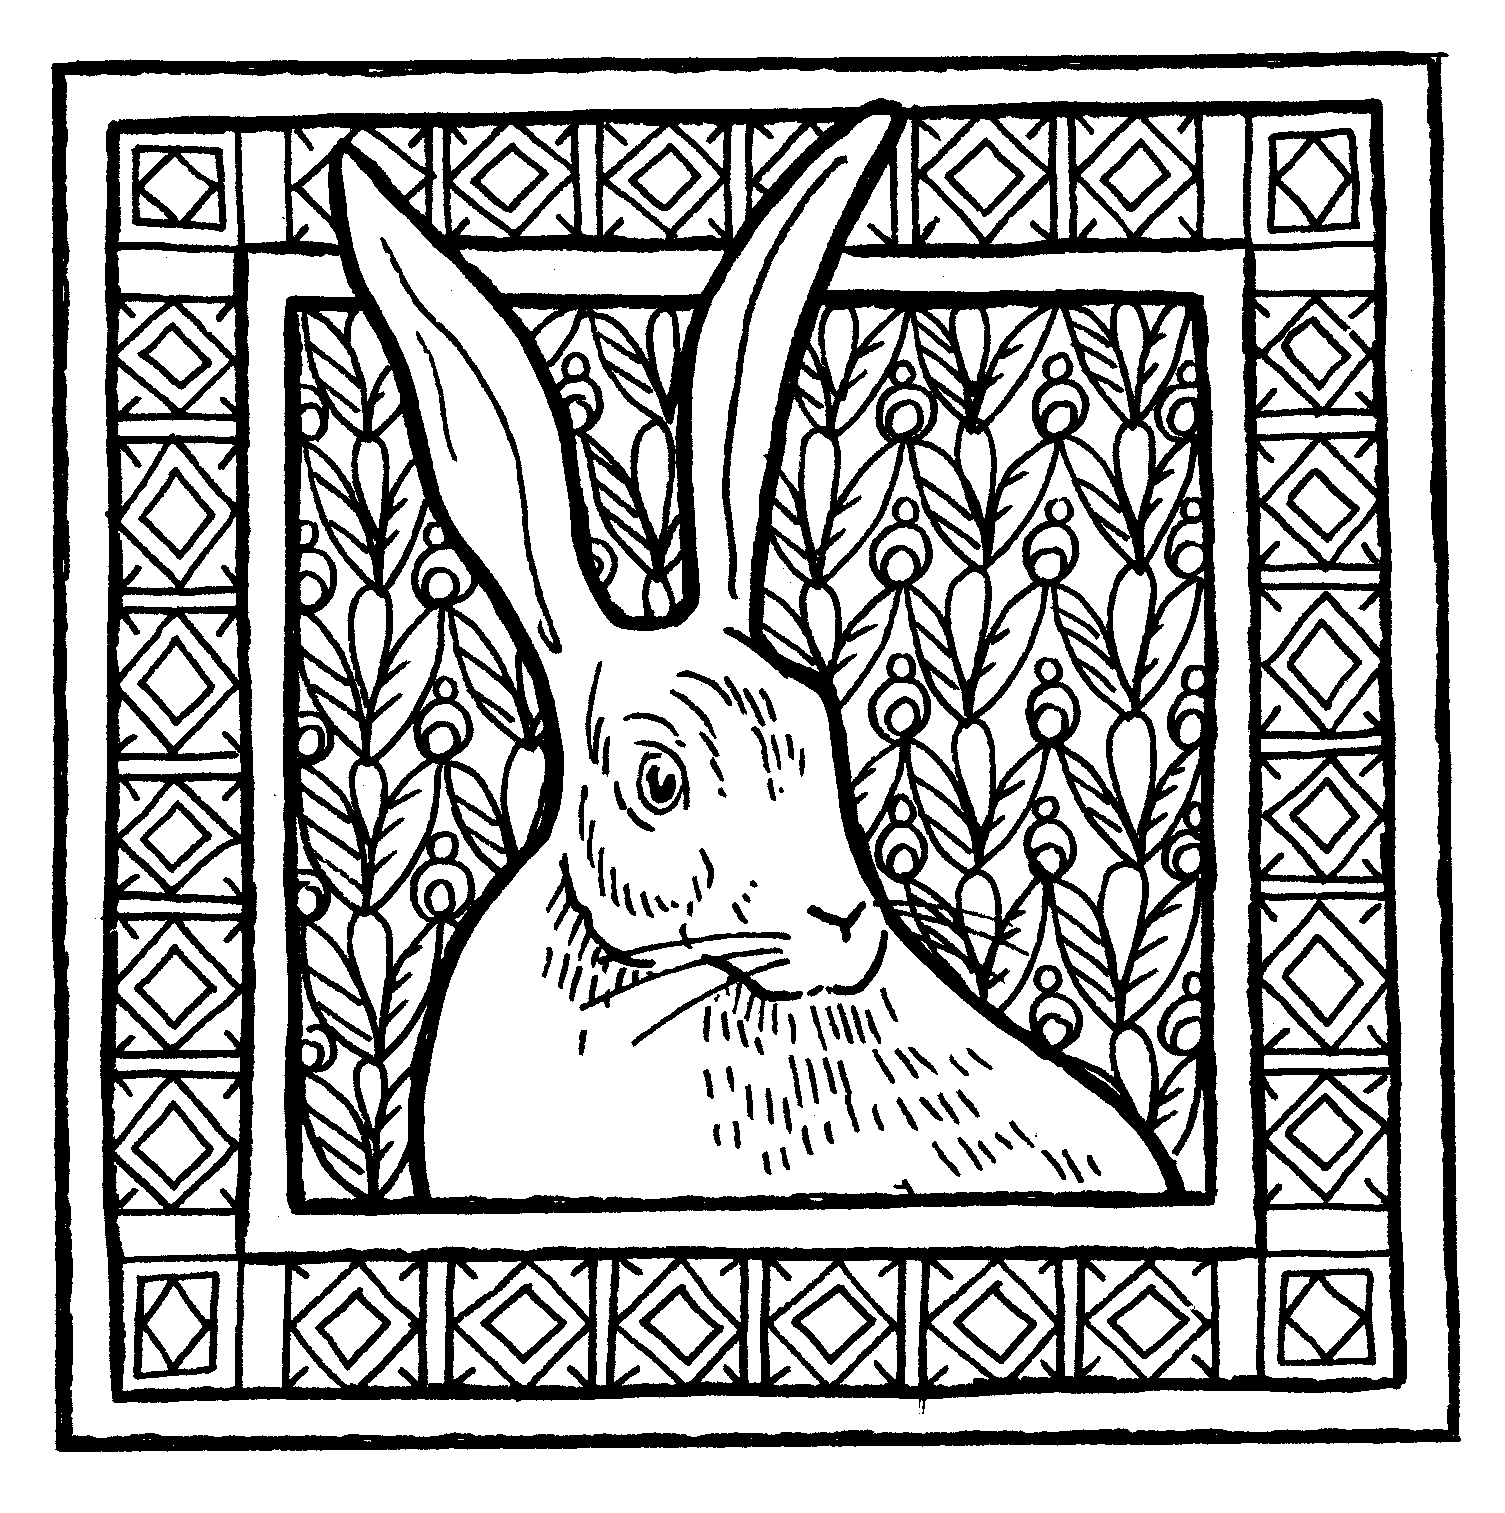 Hare in decorative square border